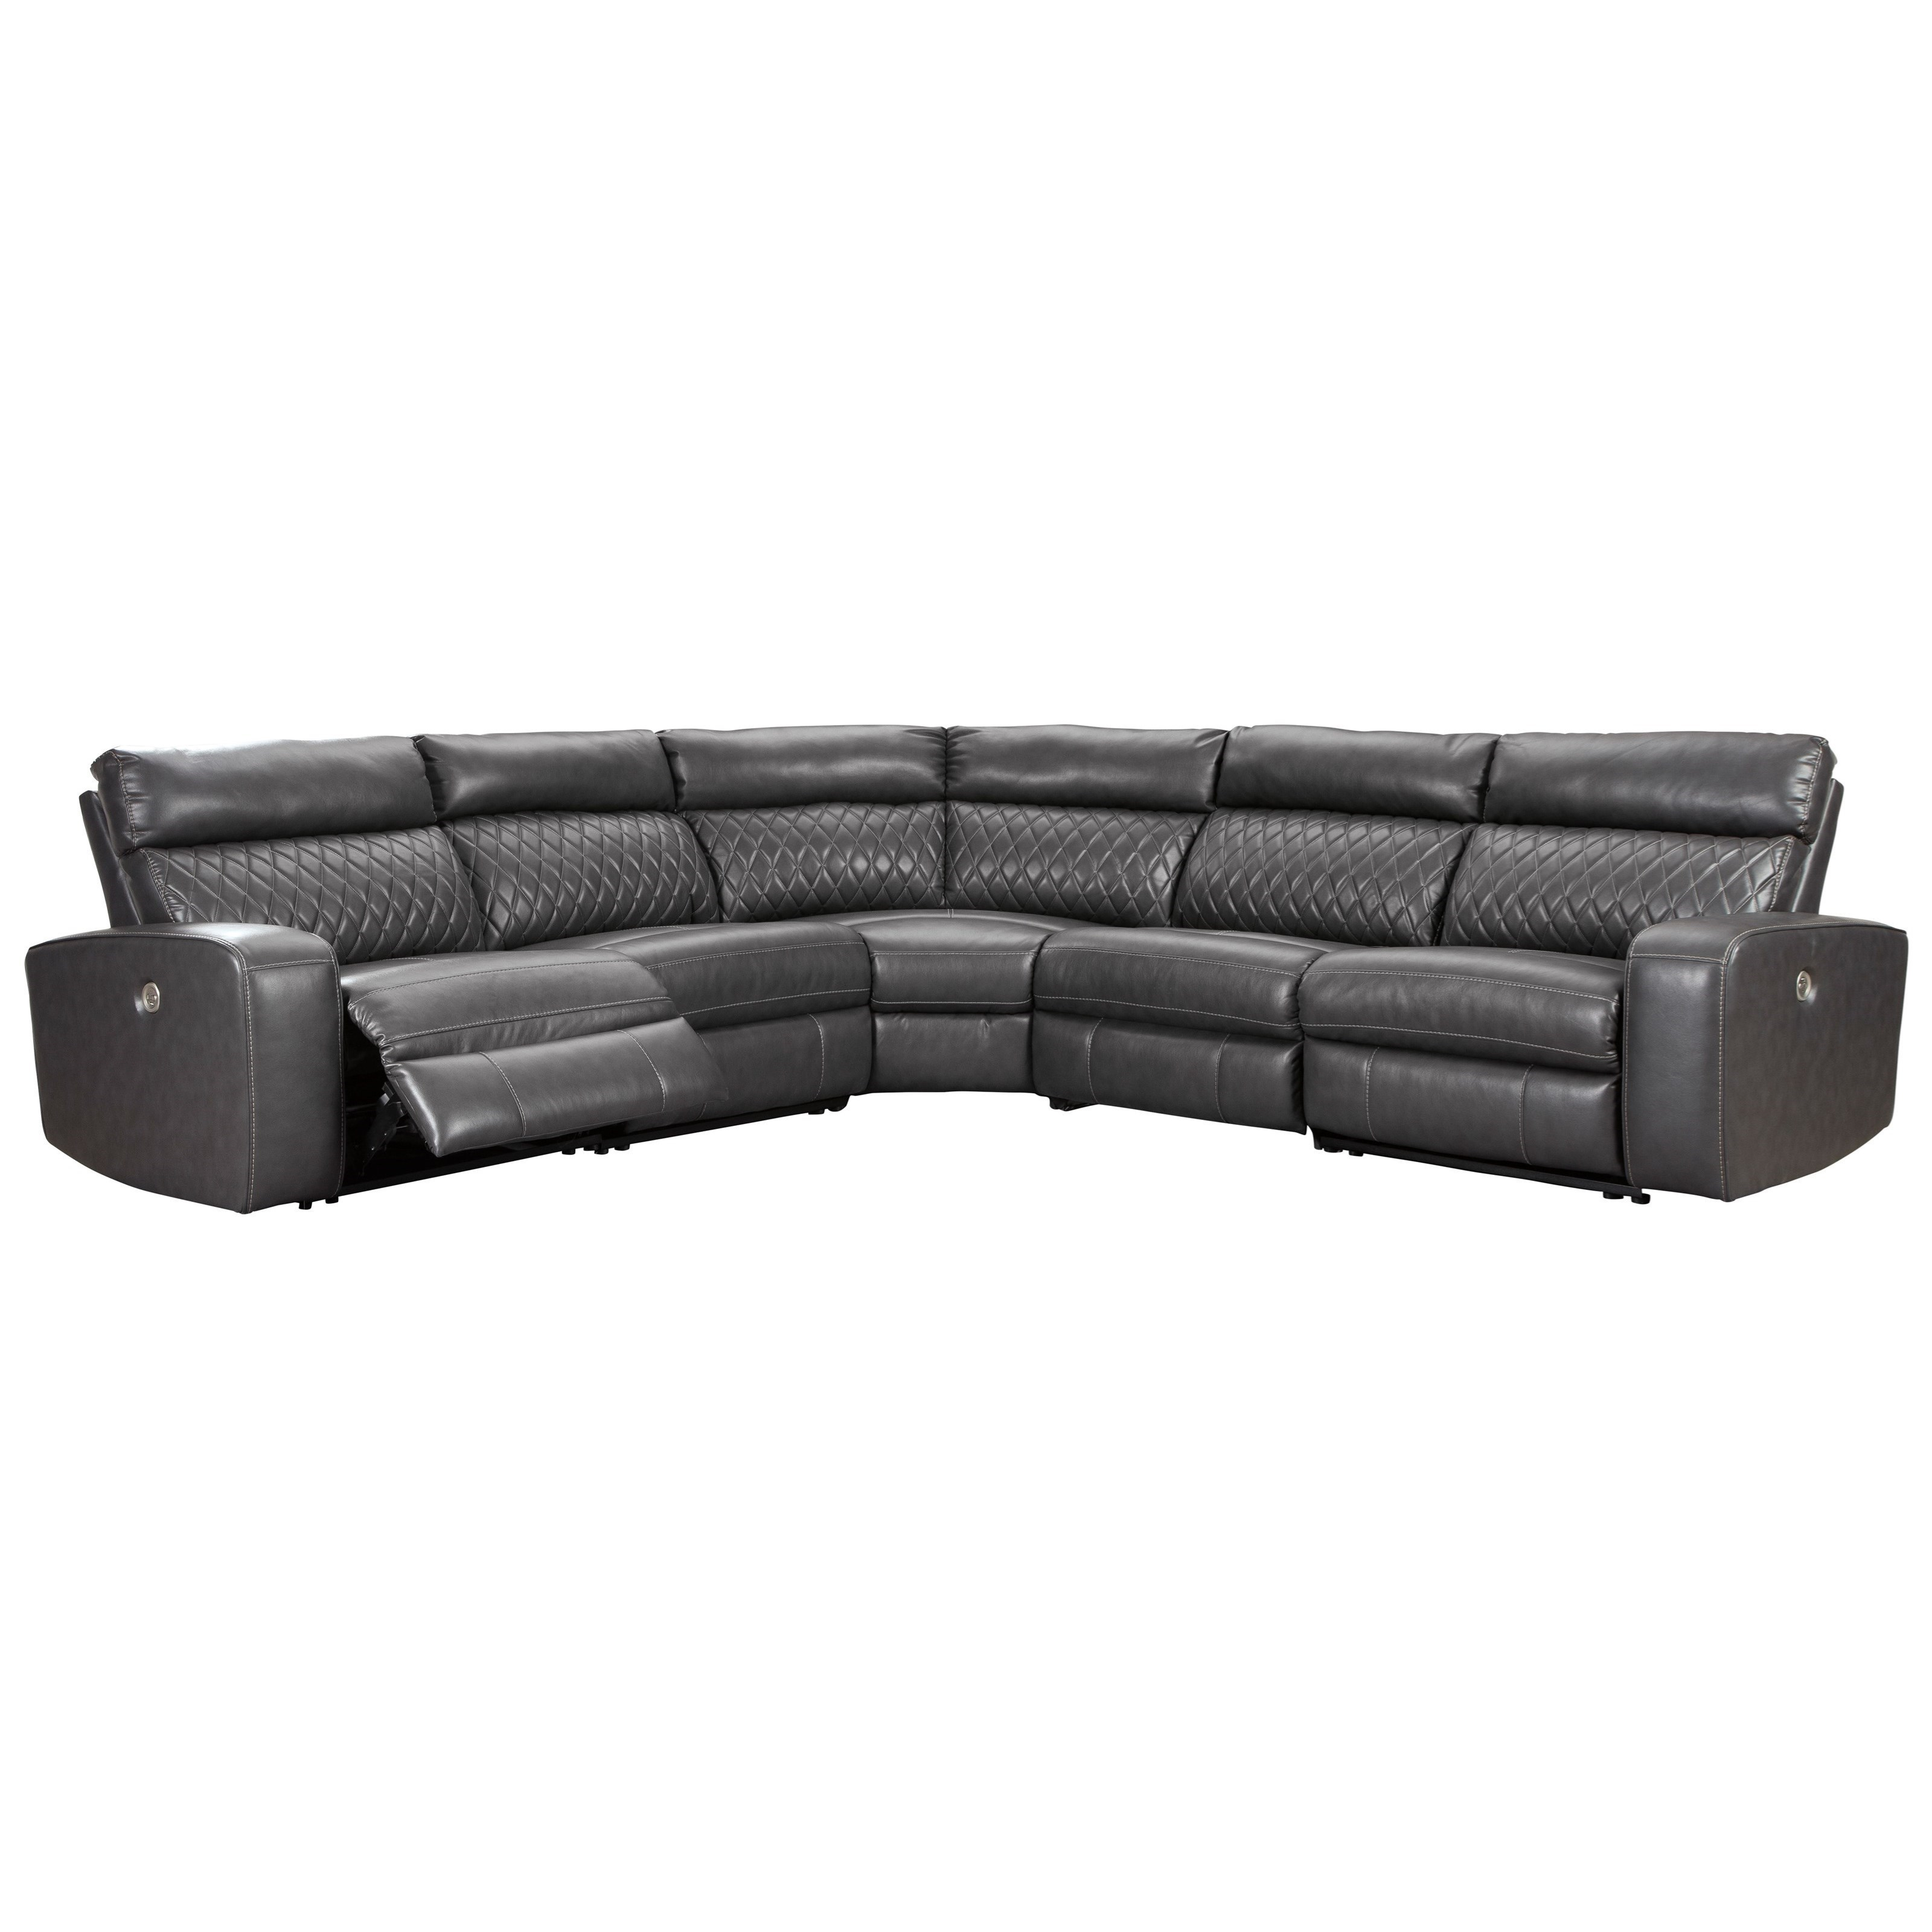 Transitional Power Reclining Sectional Sofa with USB Port